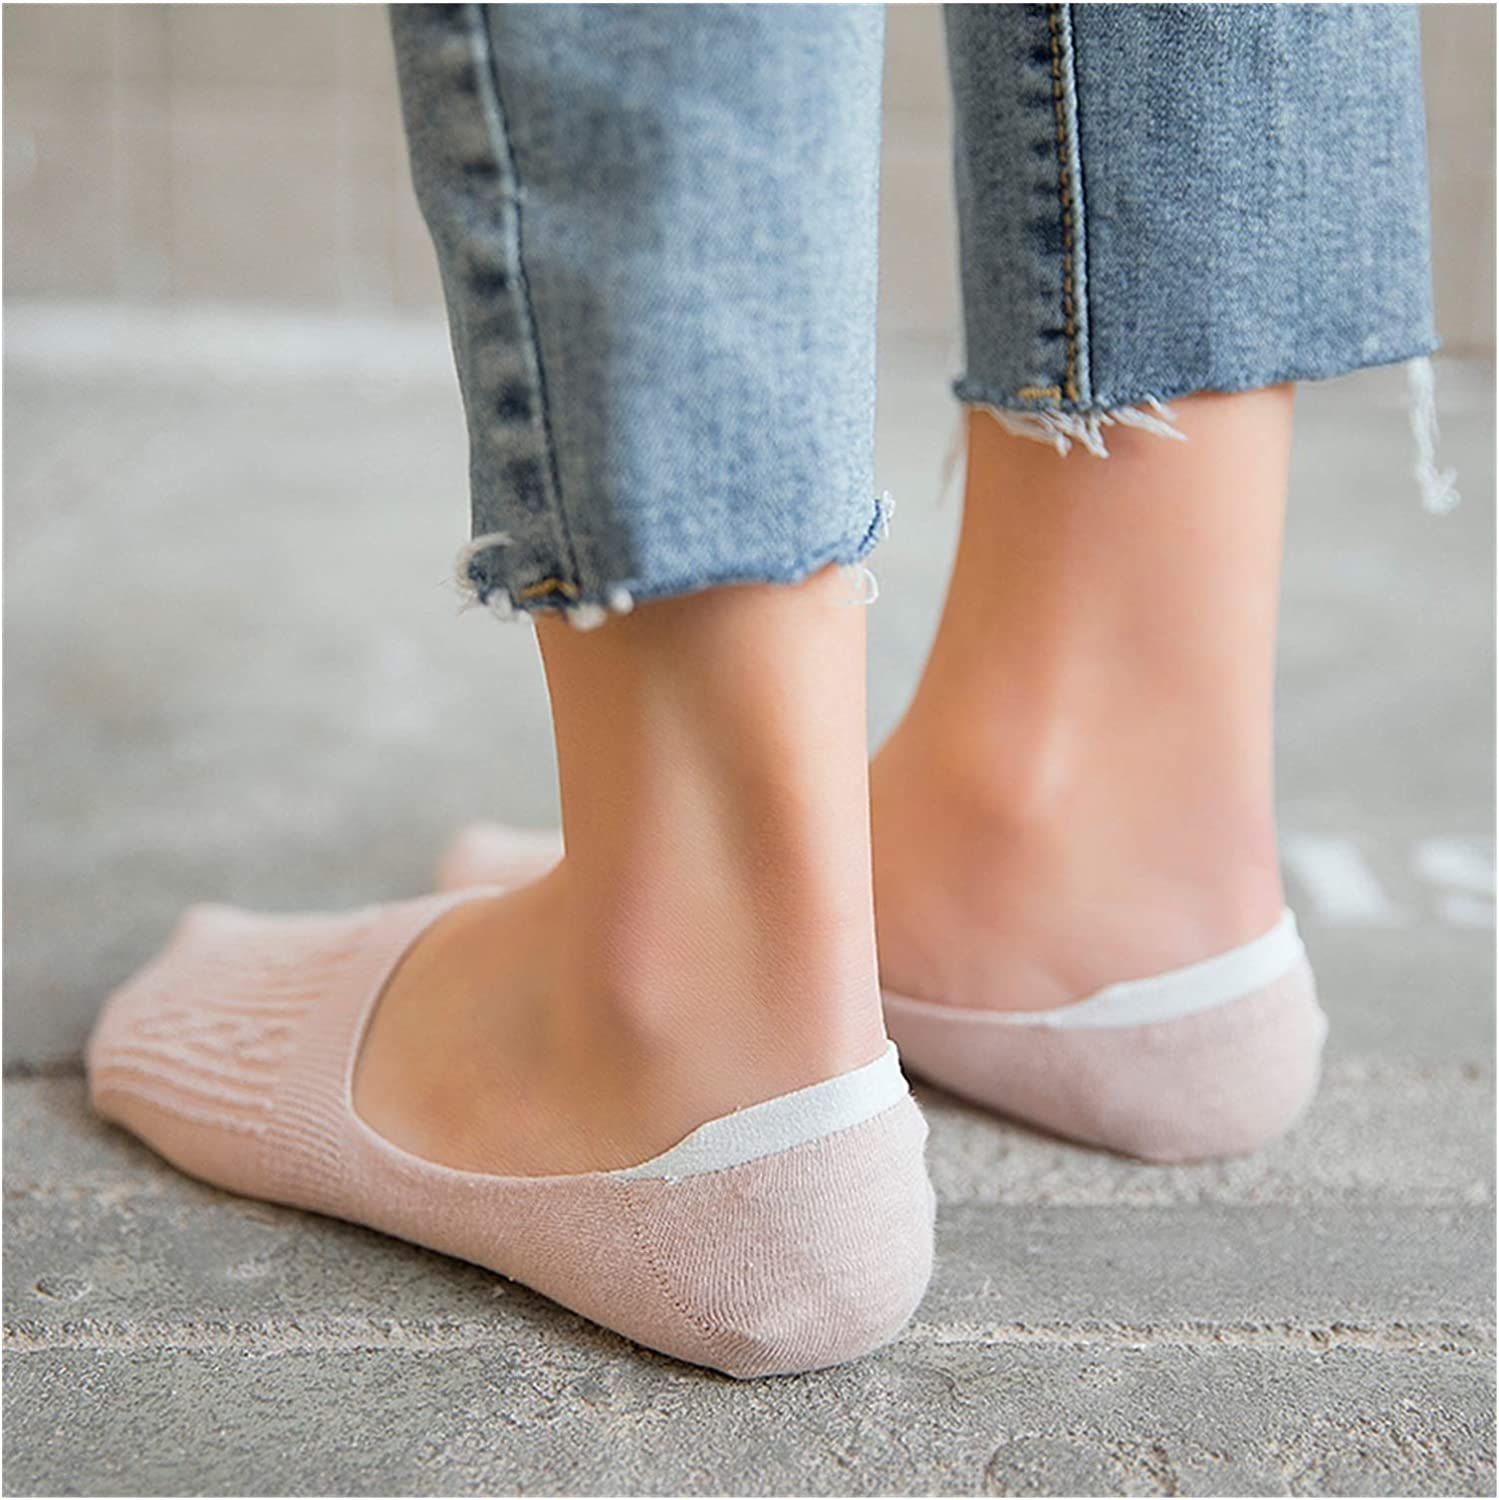 CHENGCHAO Sock New Lady Casual Breathable Ankle Boat Socks Girls Fashion Invisible Socks Non-Slip Cotton Socks Women Low Cut Candy Movement (Color : Style D 5 Pairs, Size : One Size)